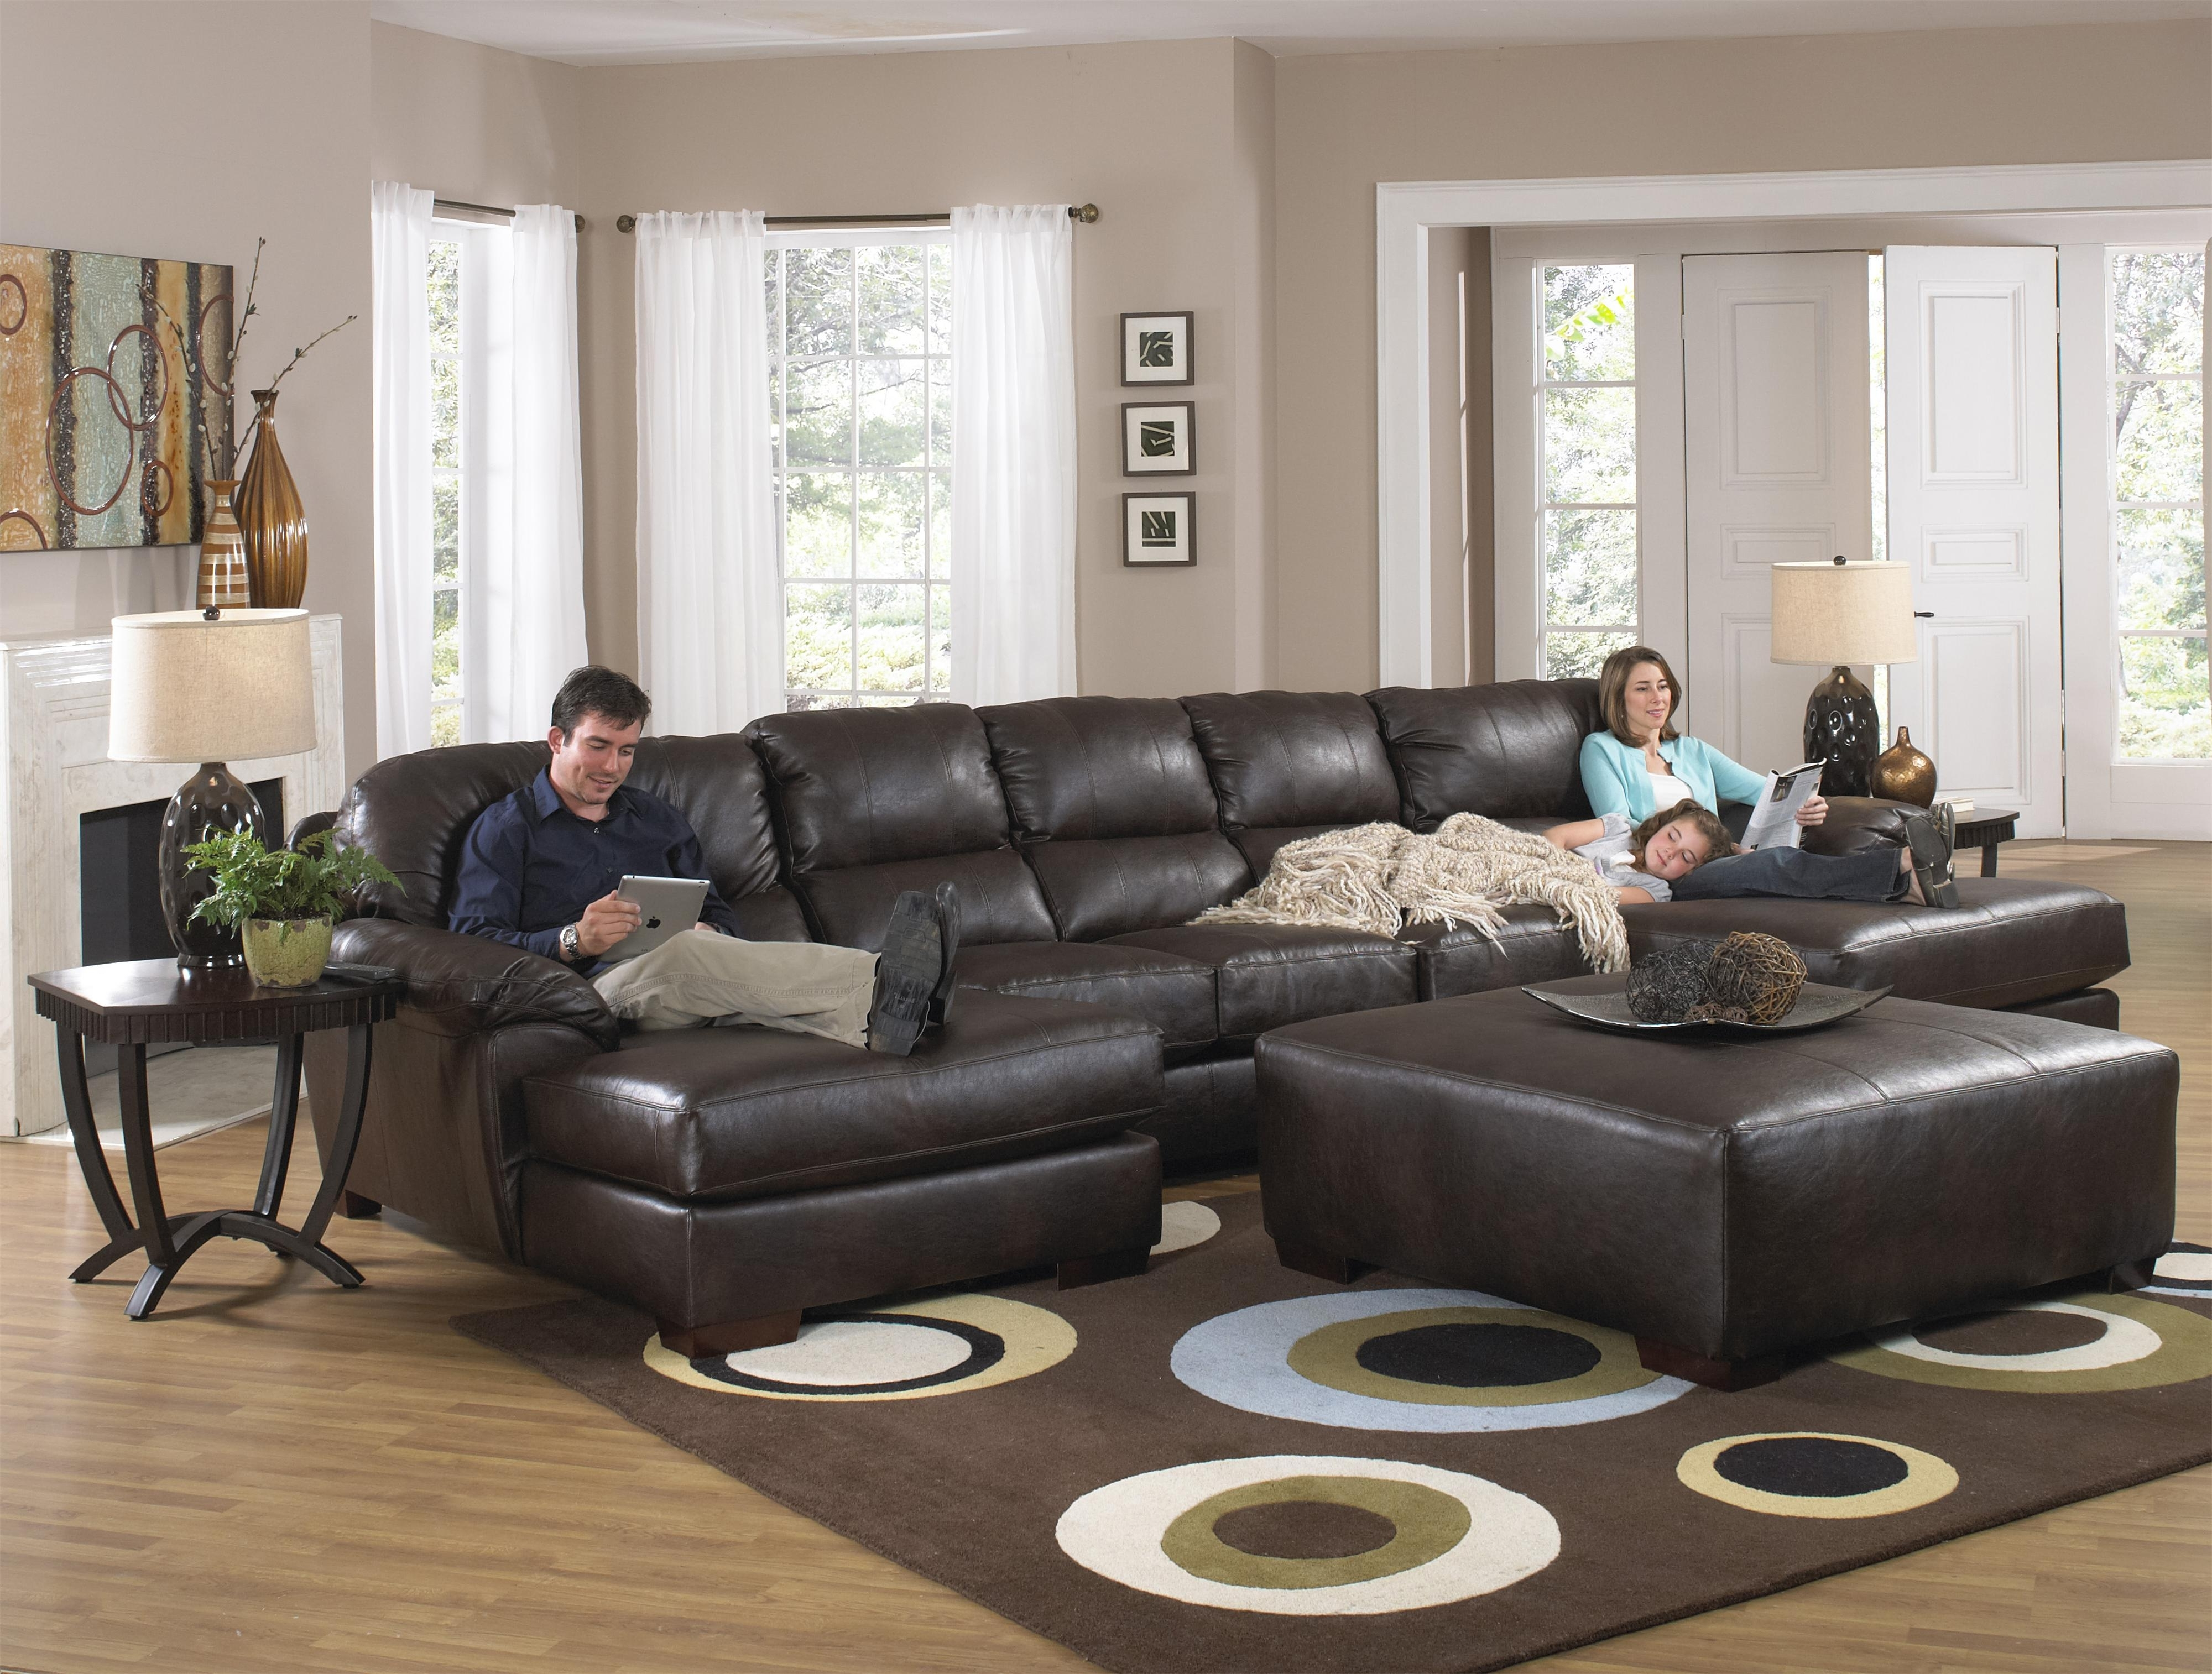 Most Current Sofa : Beautiful Large Sectional Sofa With Chaise L Shaped Cream Regarding Couches With Large Ottoman (View 6 of 20)